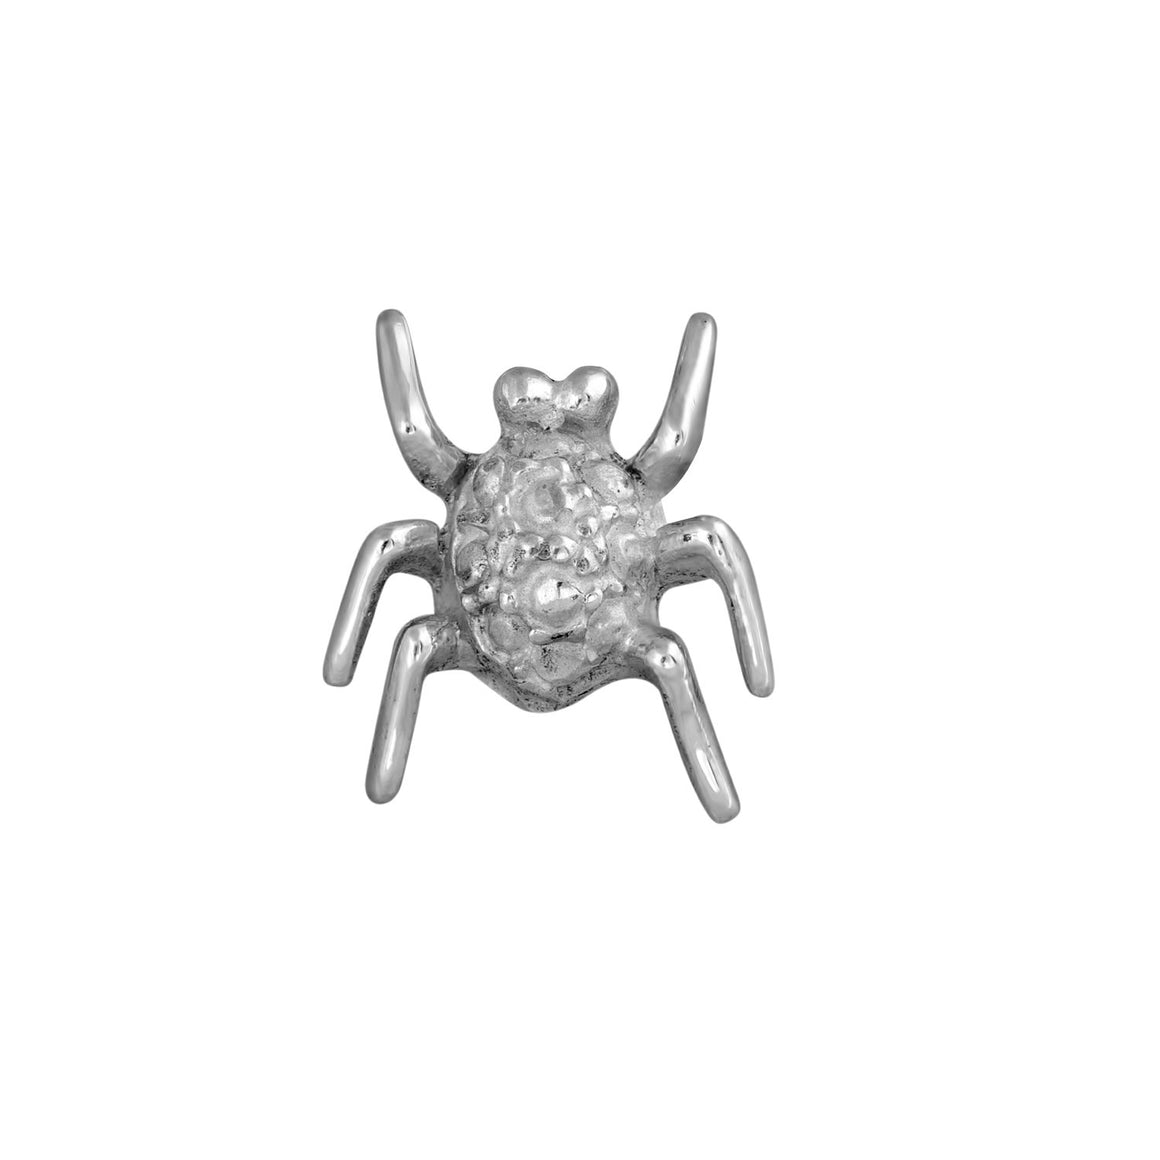 Edge Only Spotted Bug Pin in sterling silver